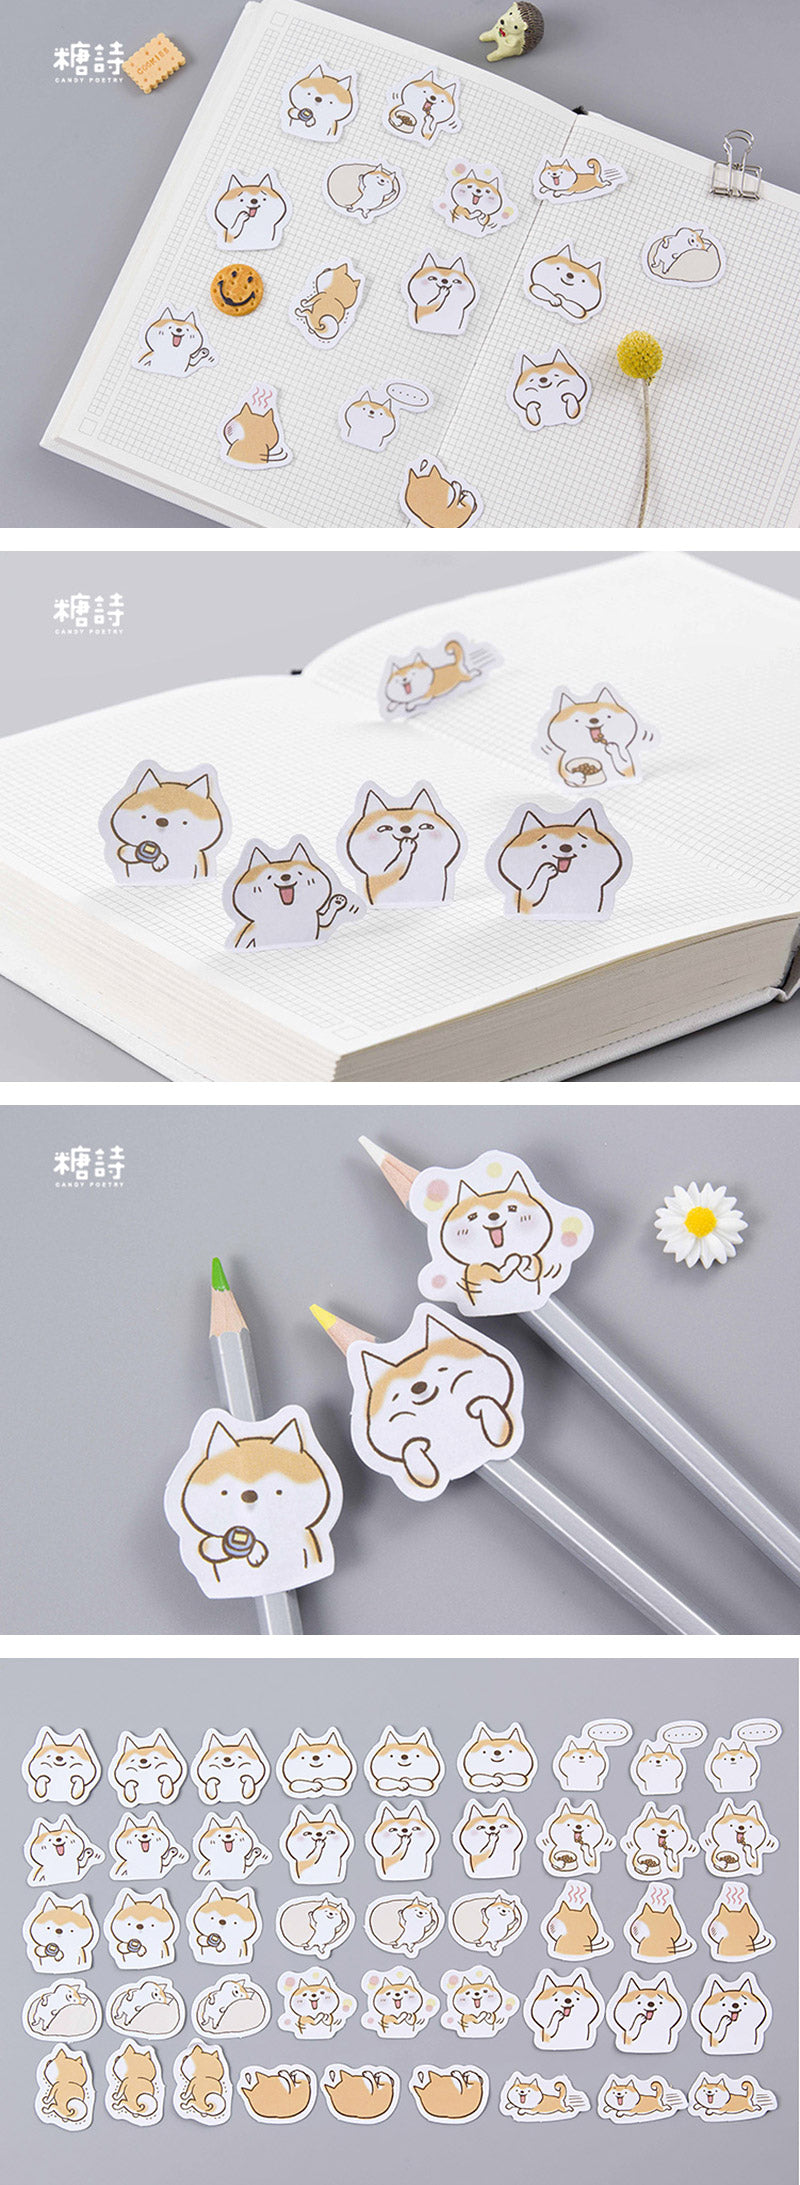 Happy Corgi Dog Cartoon Paper Stickers 45 Pcs - Detail